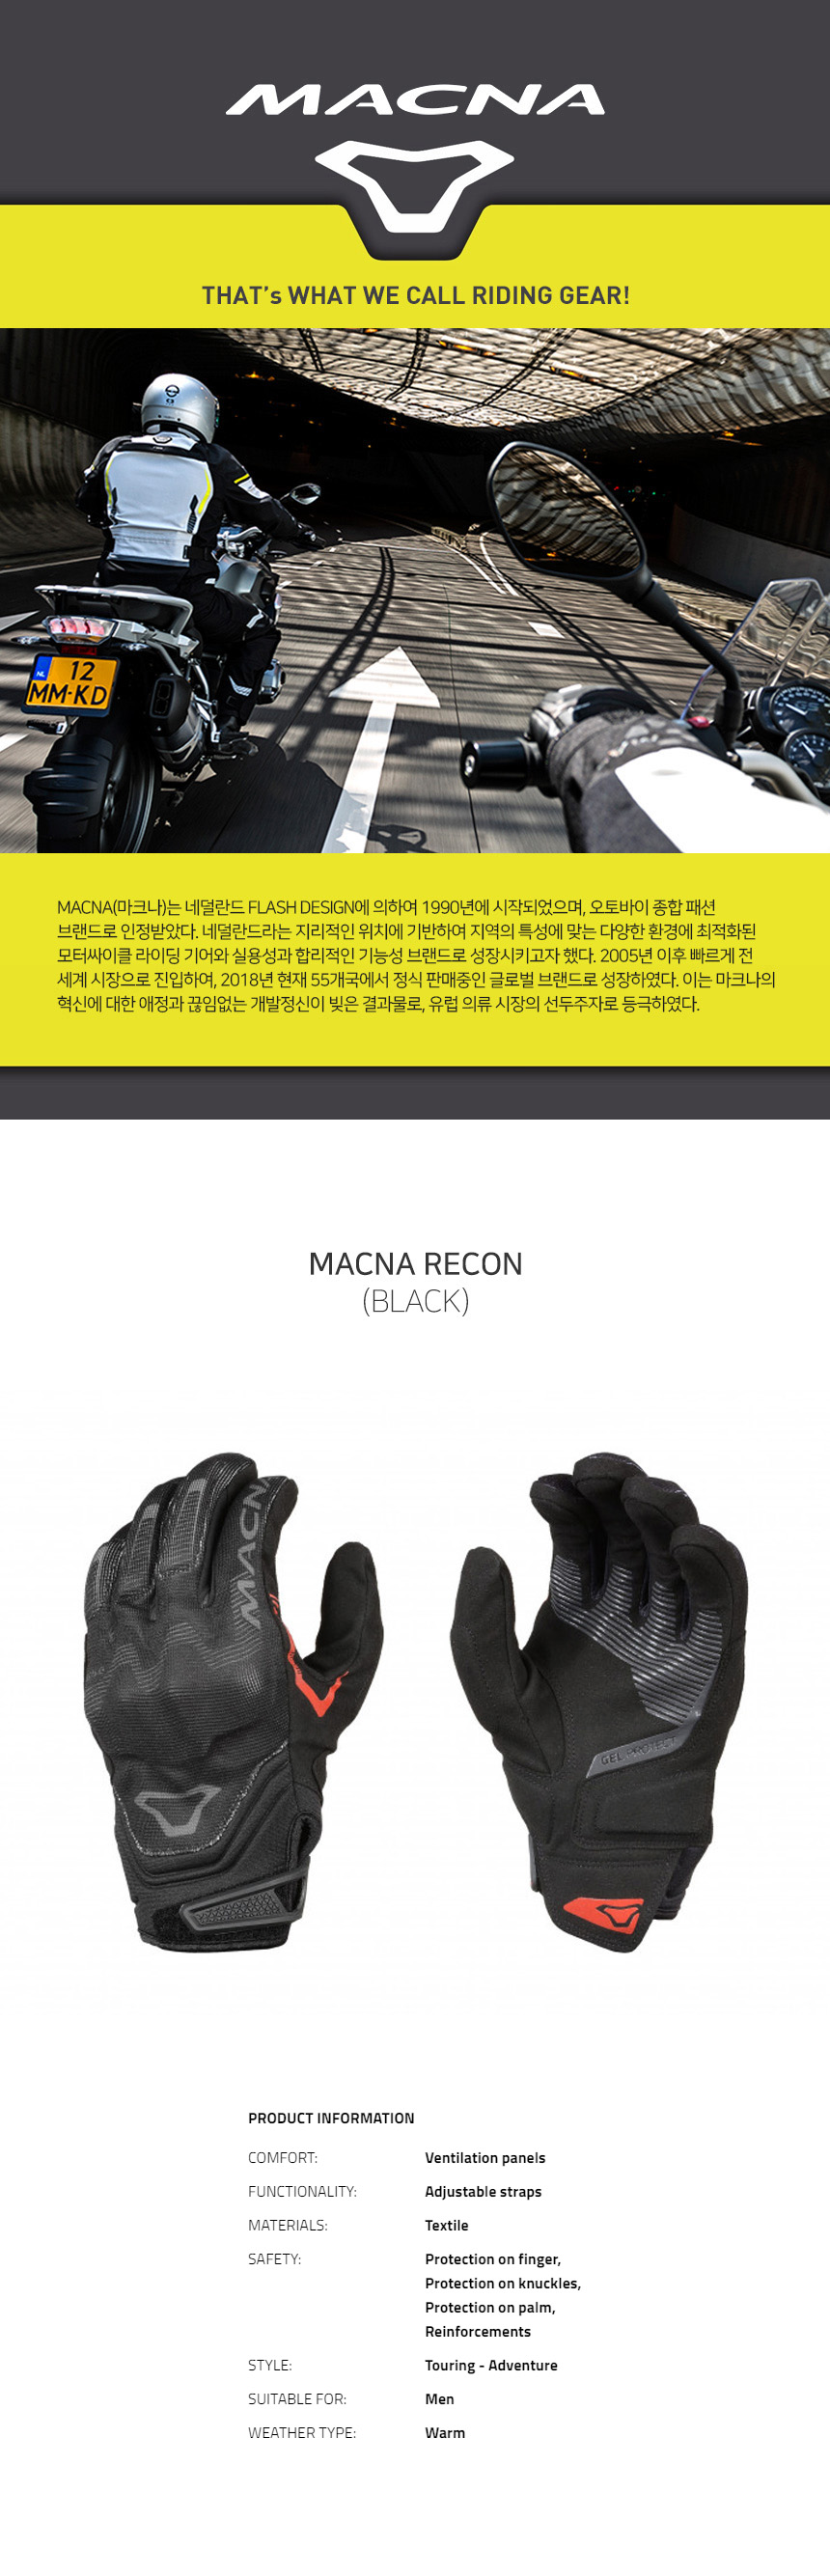 NEW GLOVES   RECON 리콘  1906219